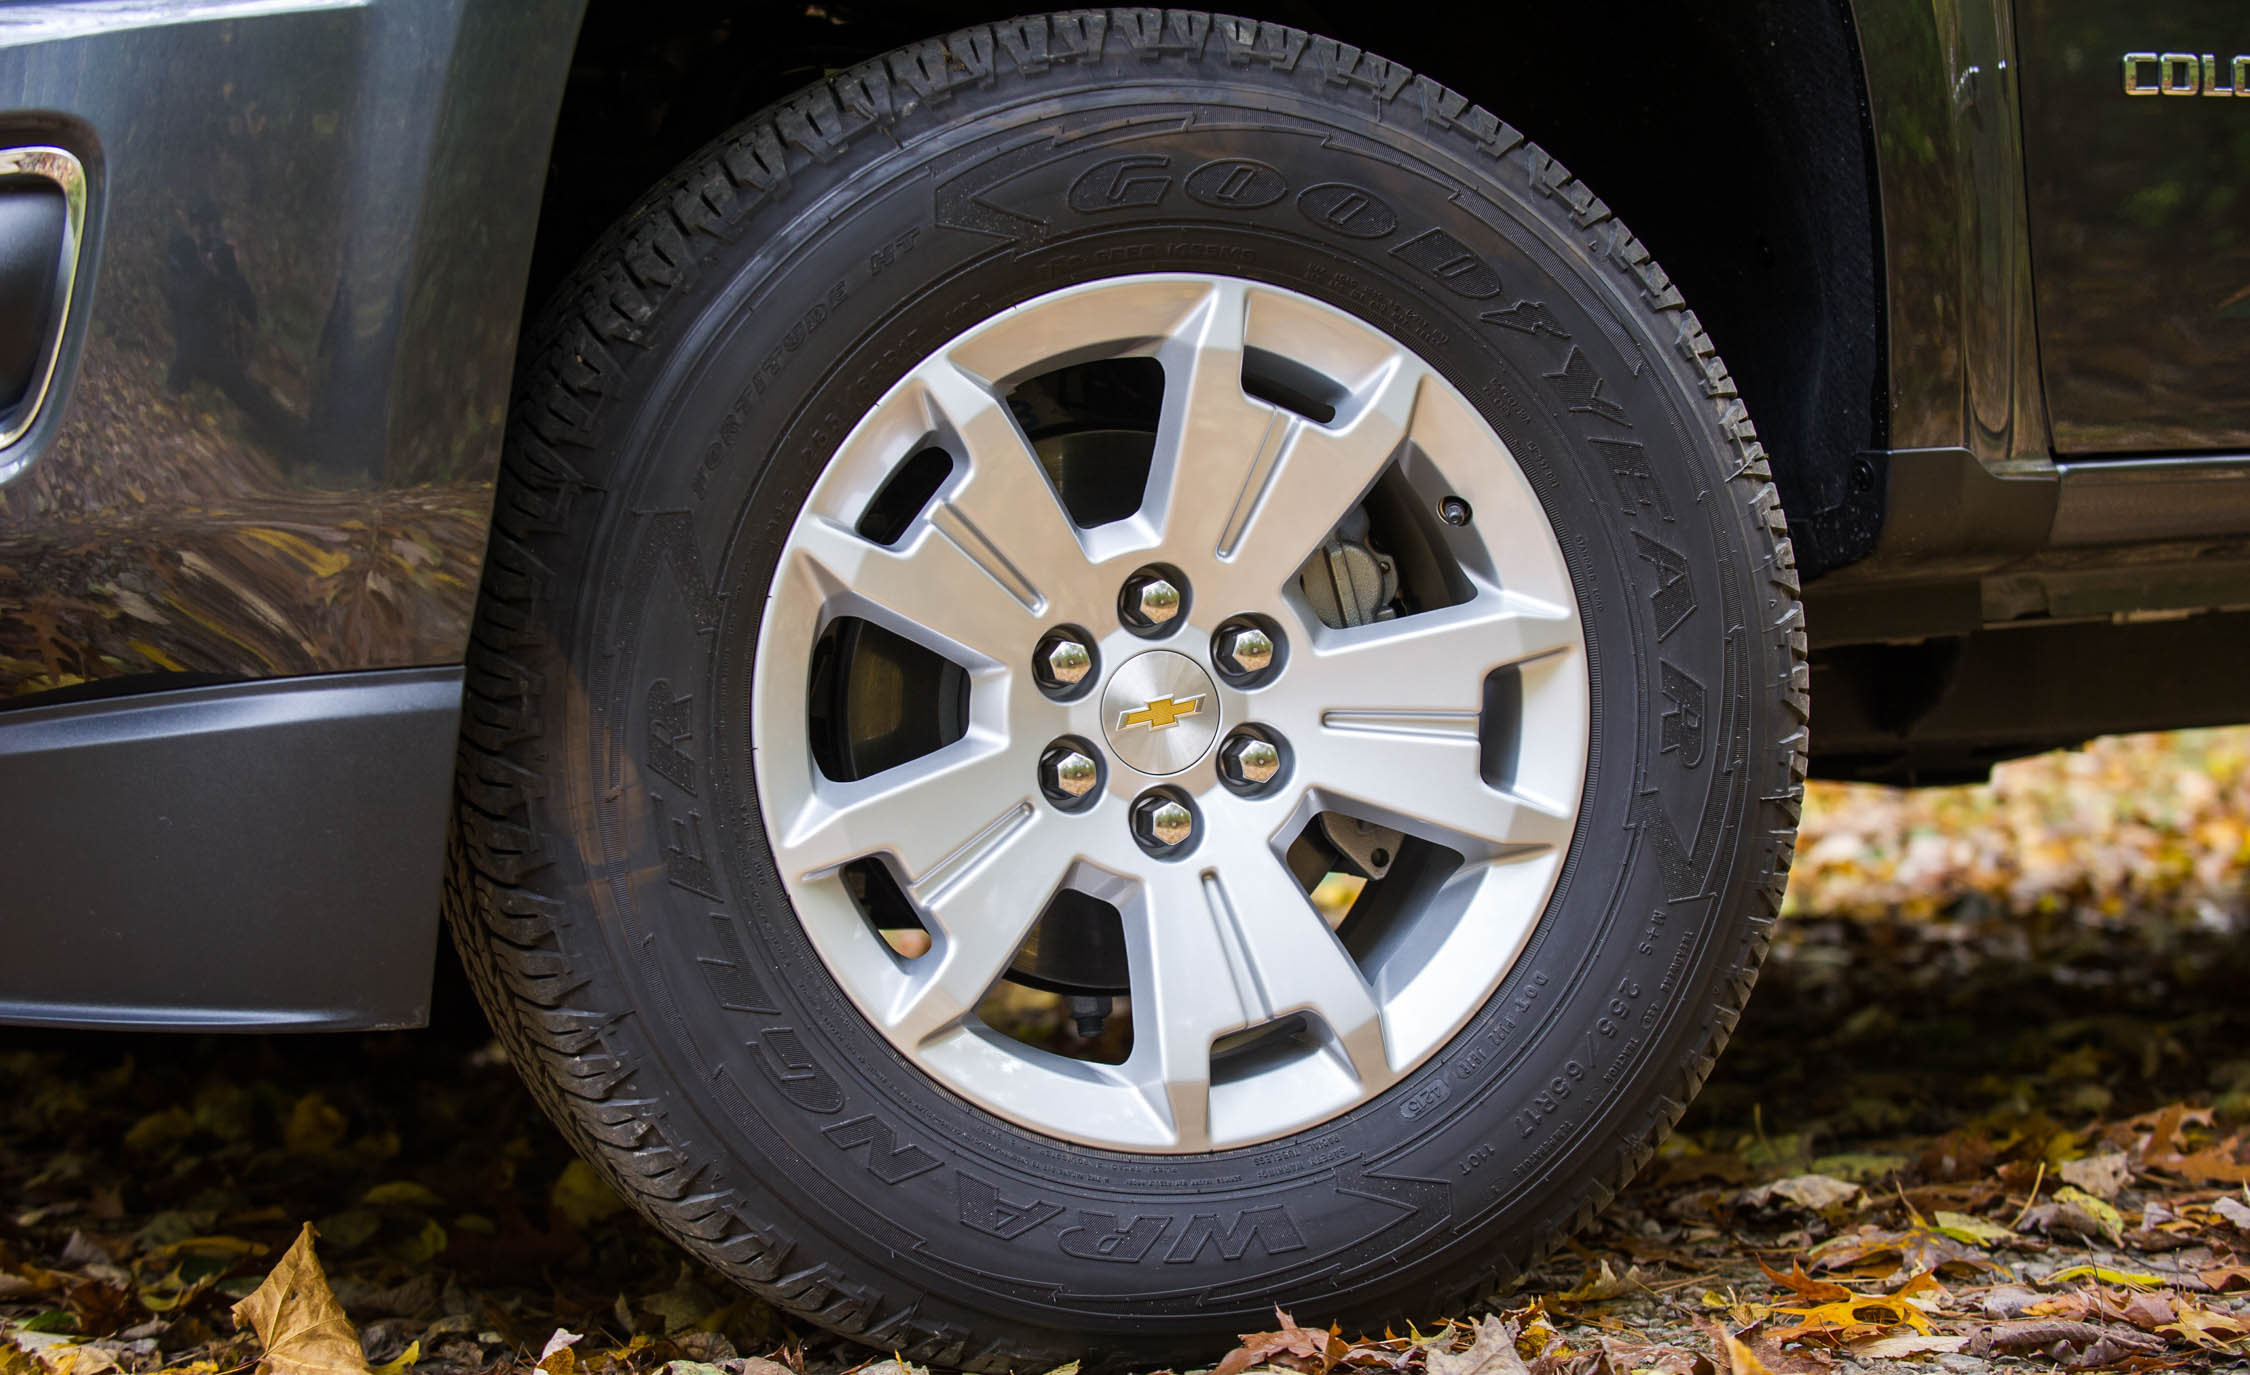 2017 Chevrolet Colorado Exterior View Wheel Trim (View 26 of 41)